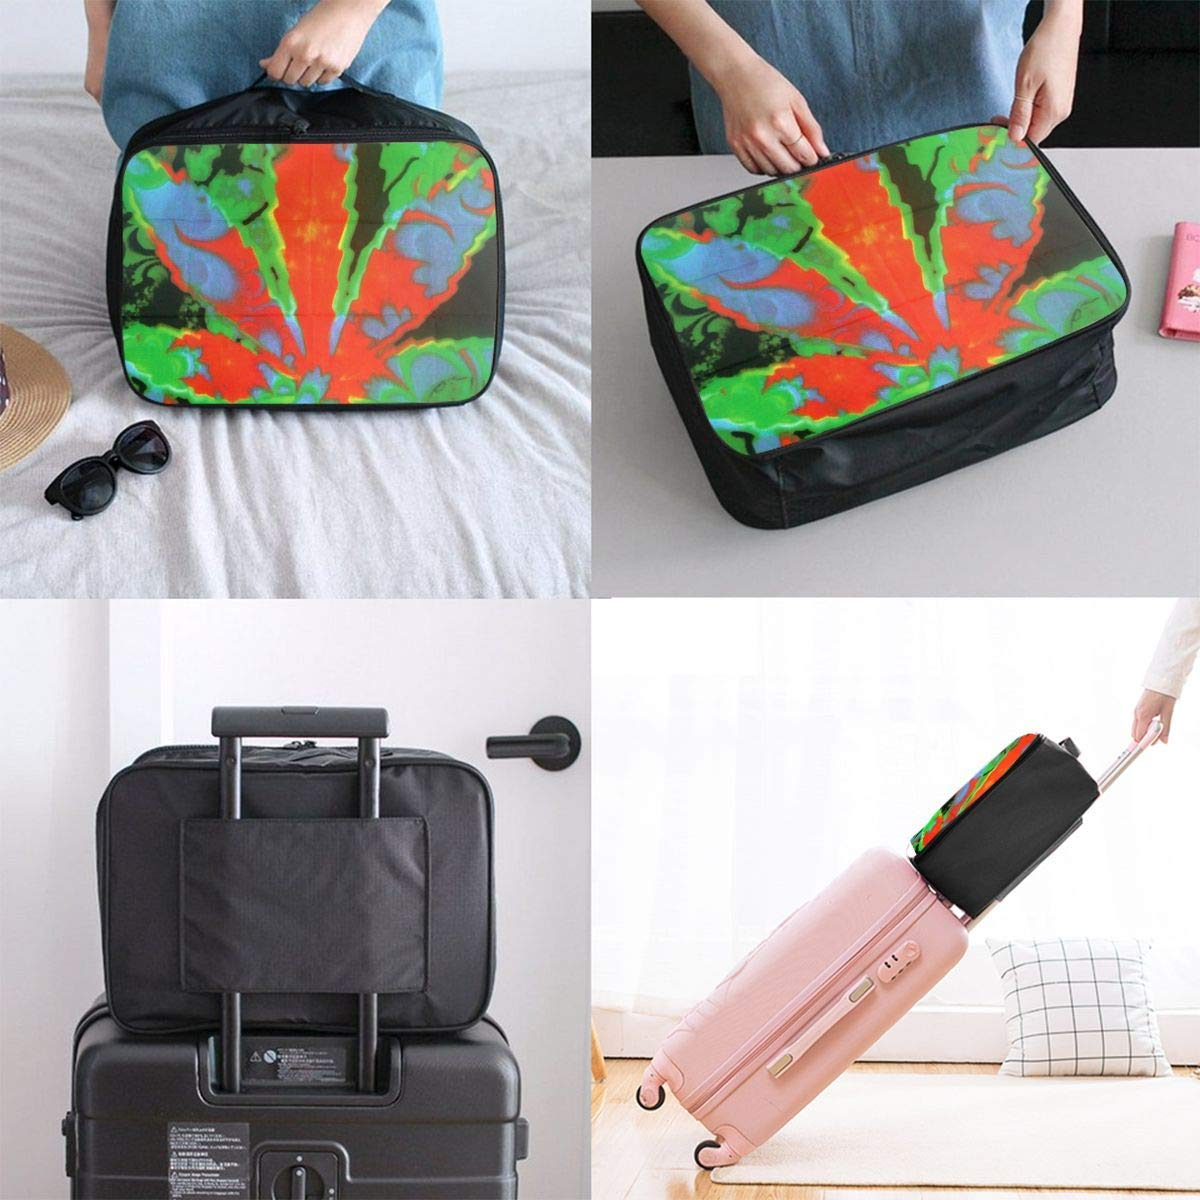 JTRVW Luggage Bags for Travel Lightweight Large Capacity Portable Duffel Bag for Men /& Women Tie Dye Weed Travel Duffel Bag Backpack